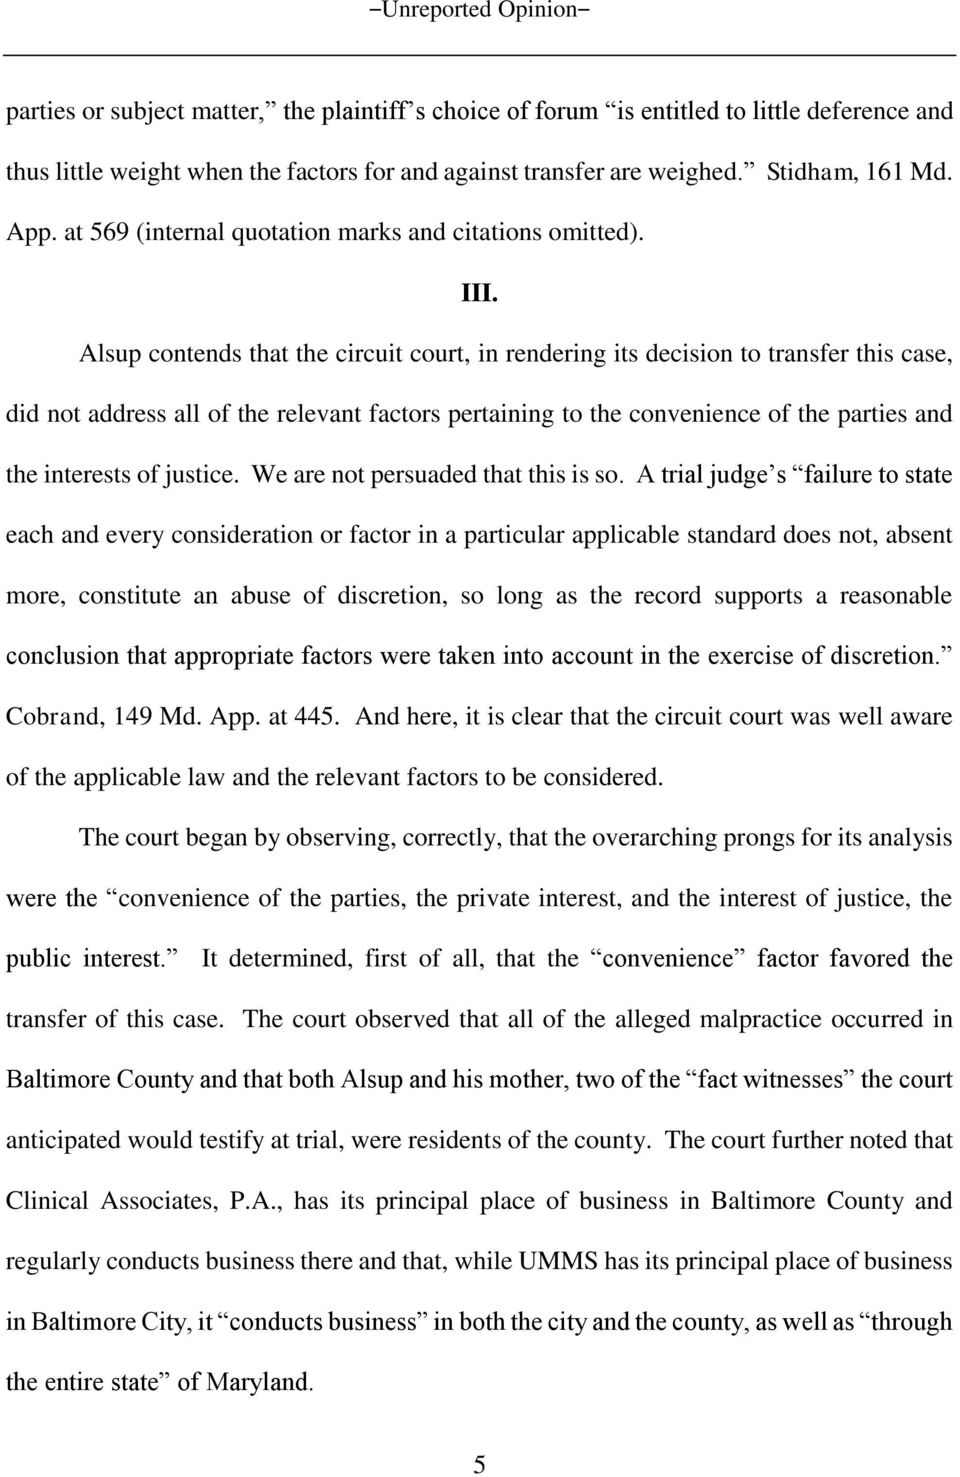 Alsup contends that the circuit court, in rendering its decision to transfer this case, did not address all of the relevant factors pertaining to the convenience of the parties and the interests of